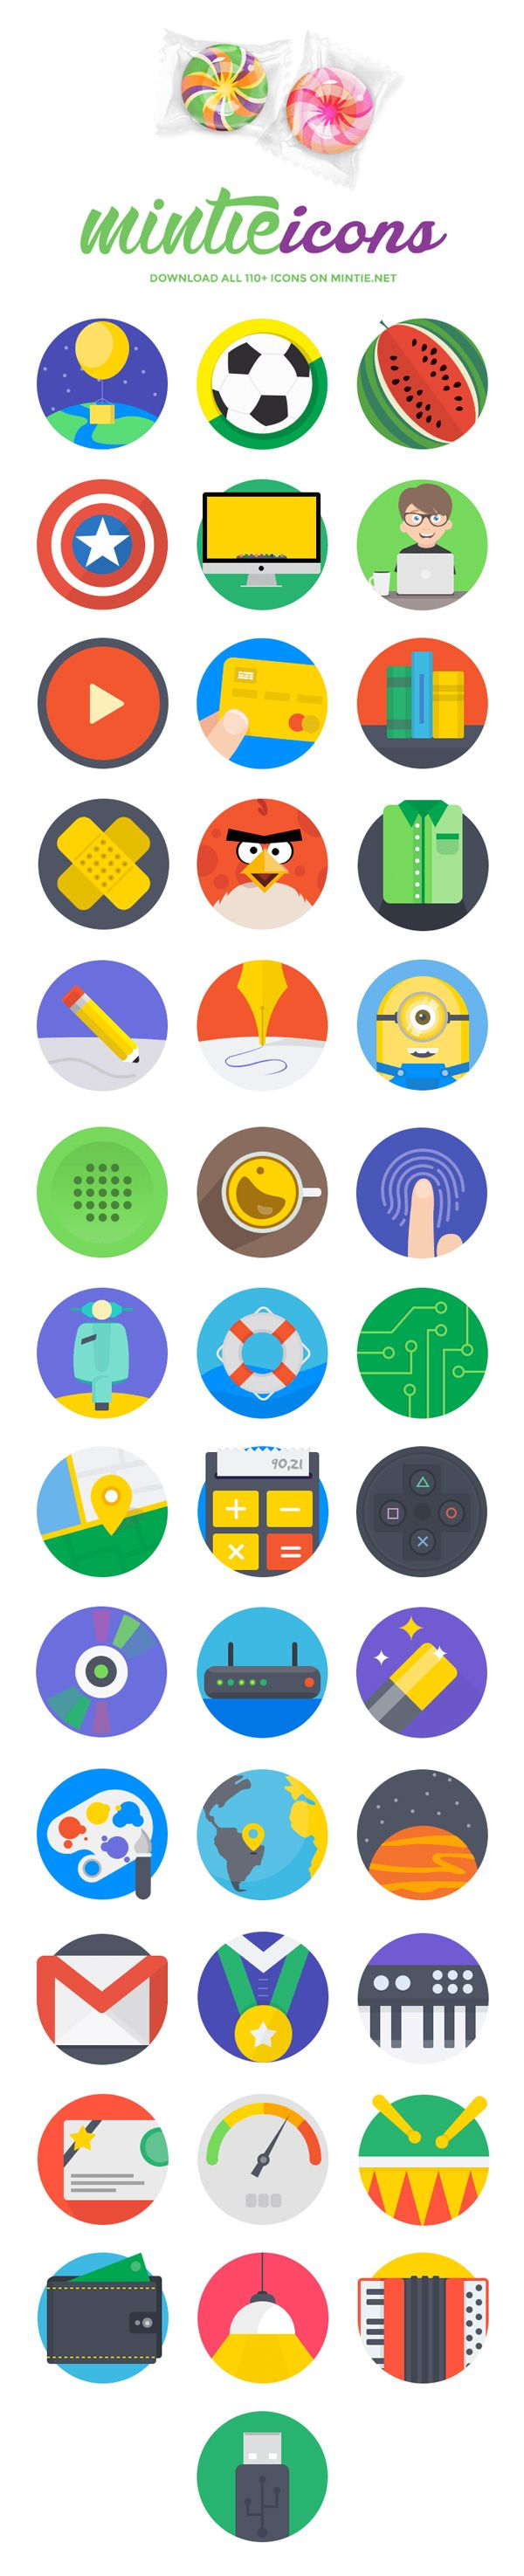 Free Download Mintie 40 Fresh Flat Icons Icon design